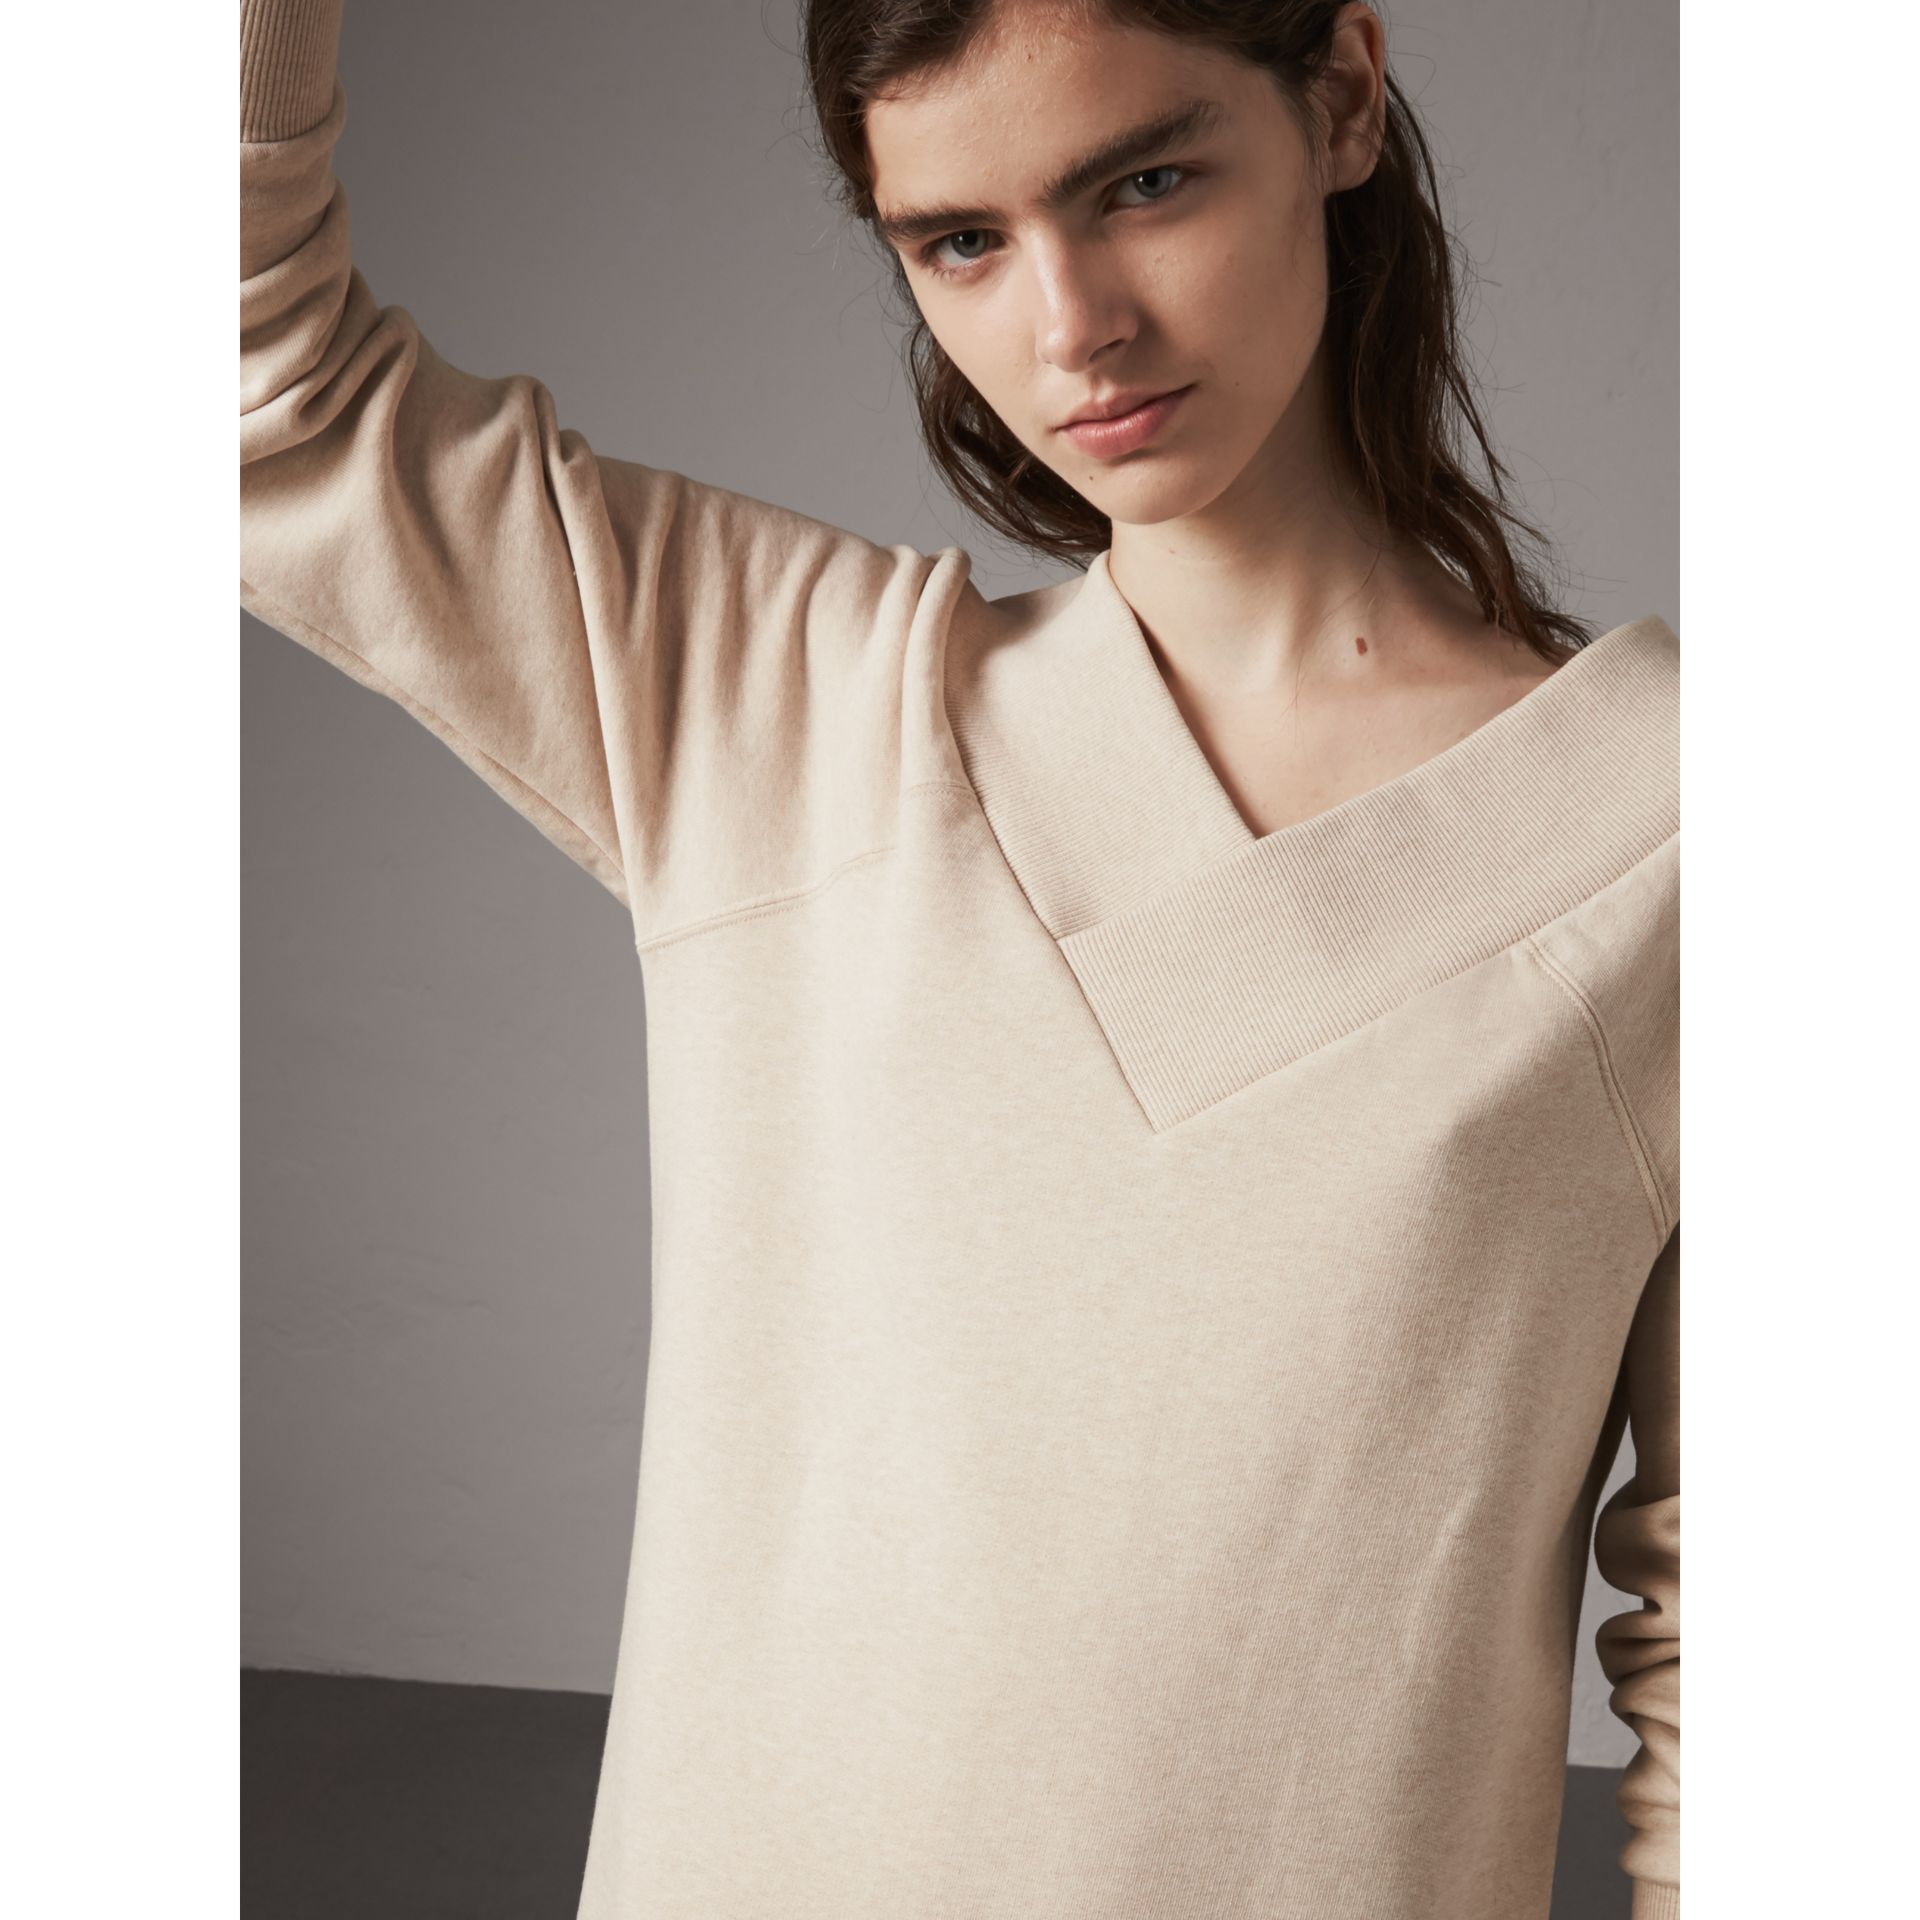 Cotton Blend V-neck Sweater Dress in Oatmeal Melange - Women | Burberry - gallery image 5